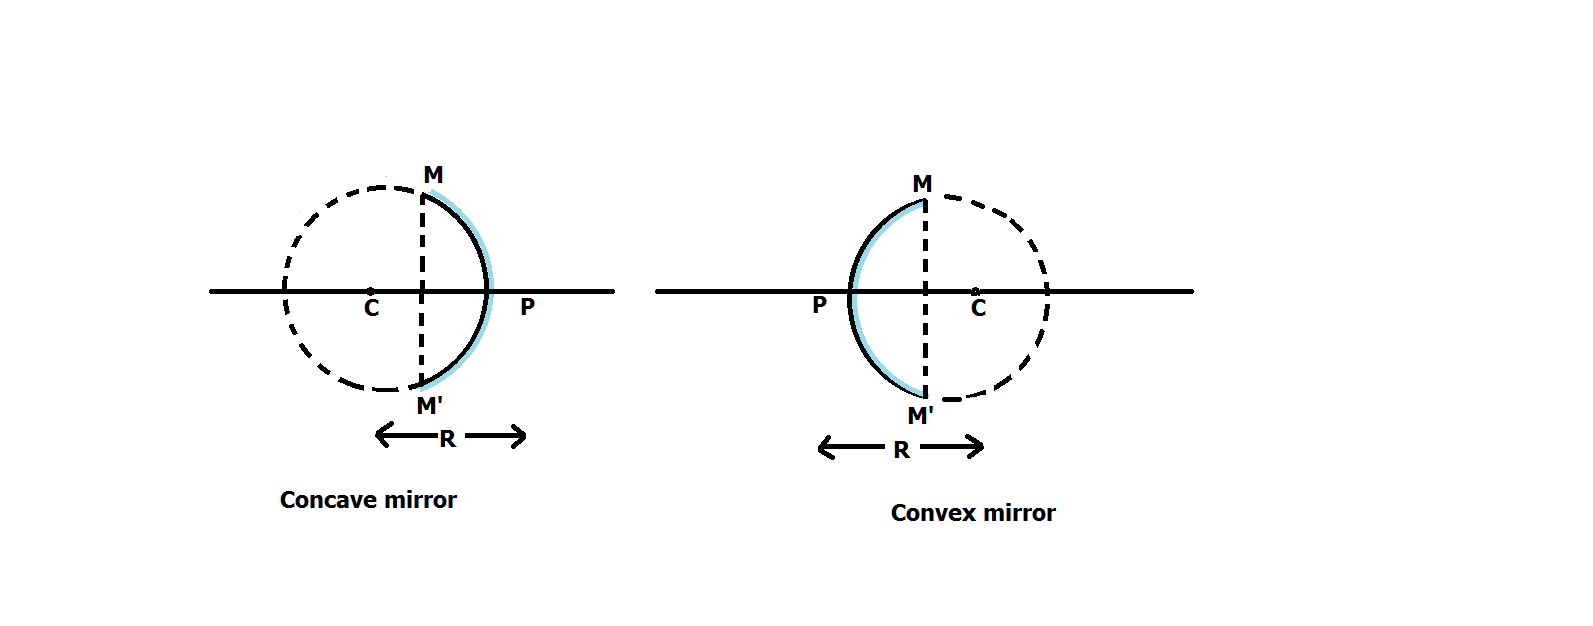 Write short note on concepts reated to spherical mirrors